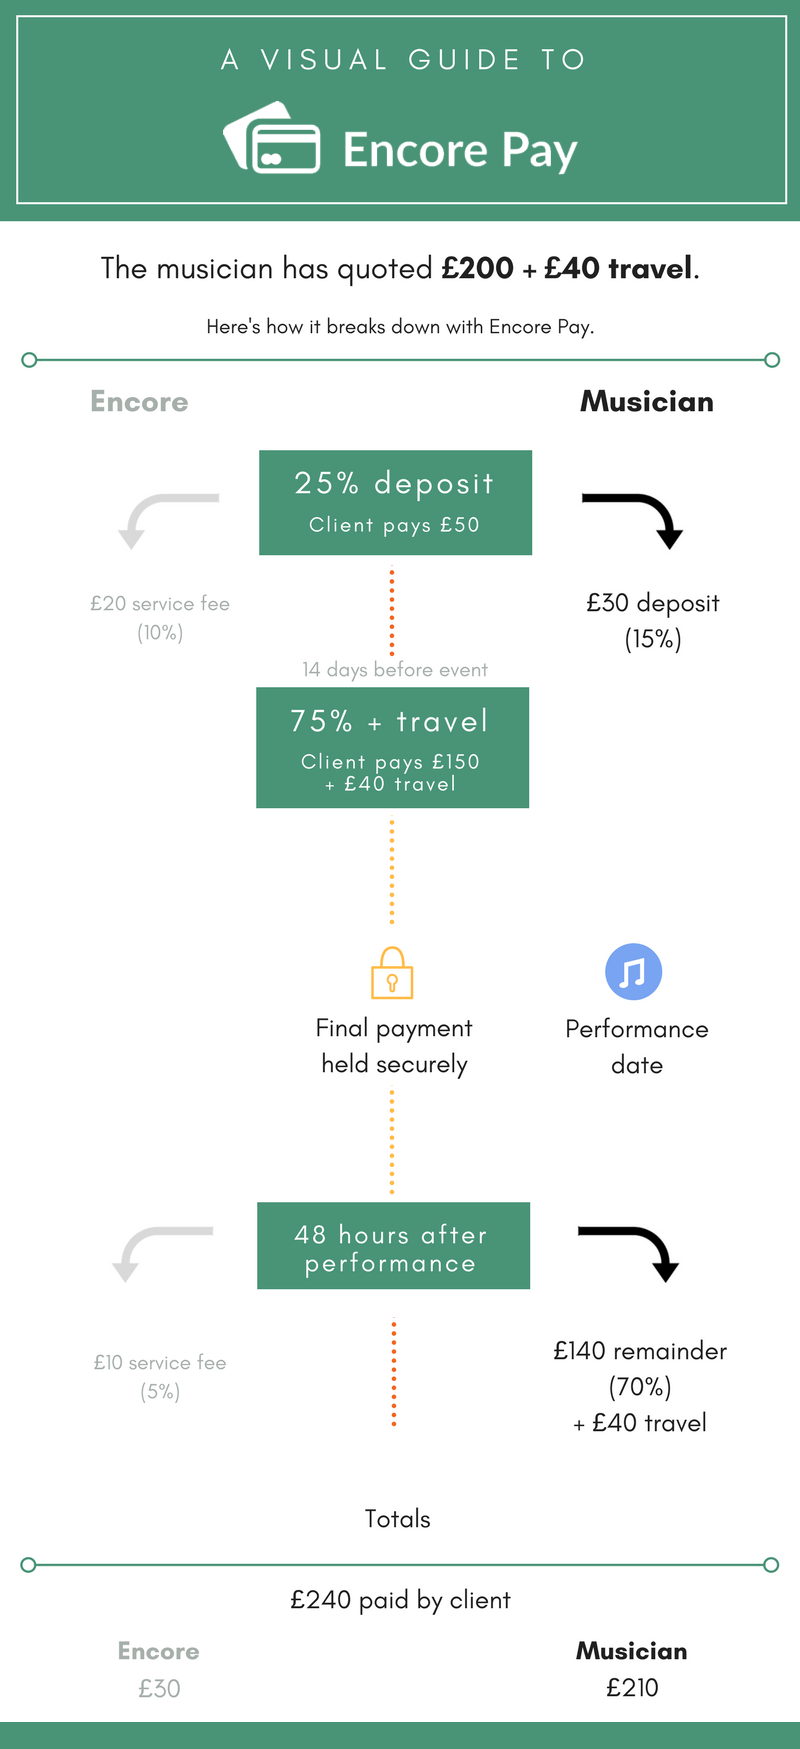 Encore Pay Visual Guide - Infographic